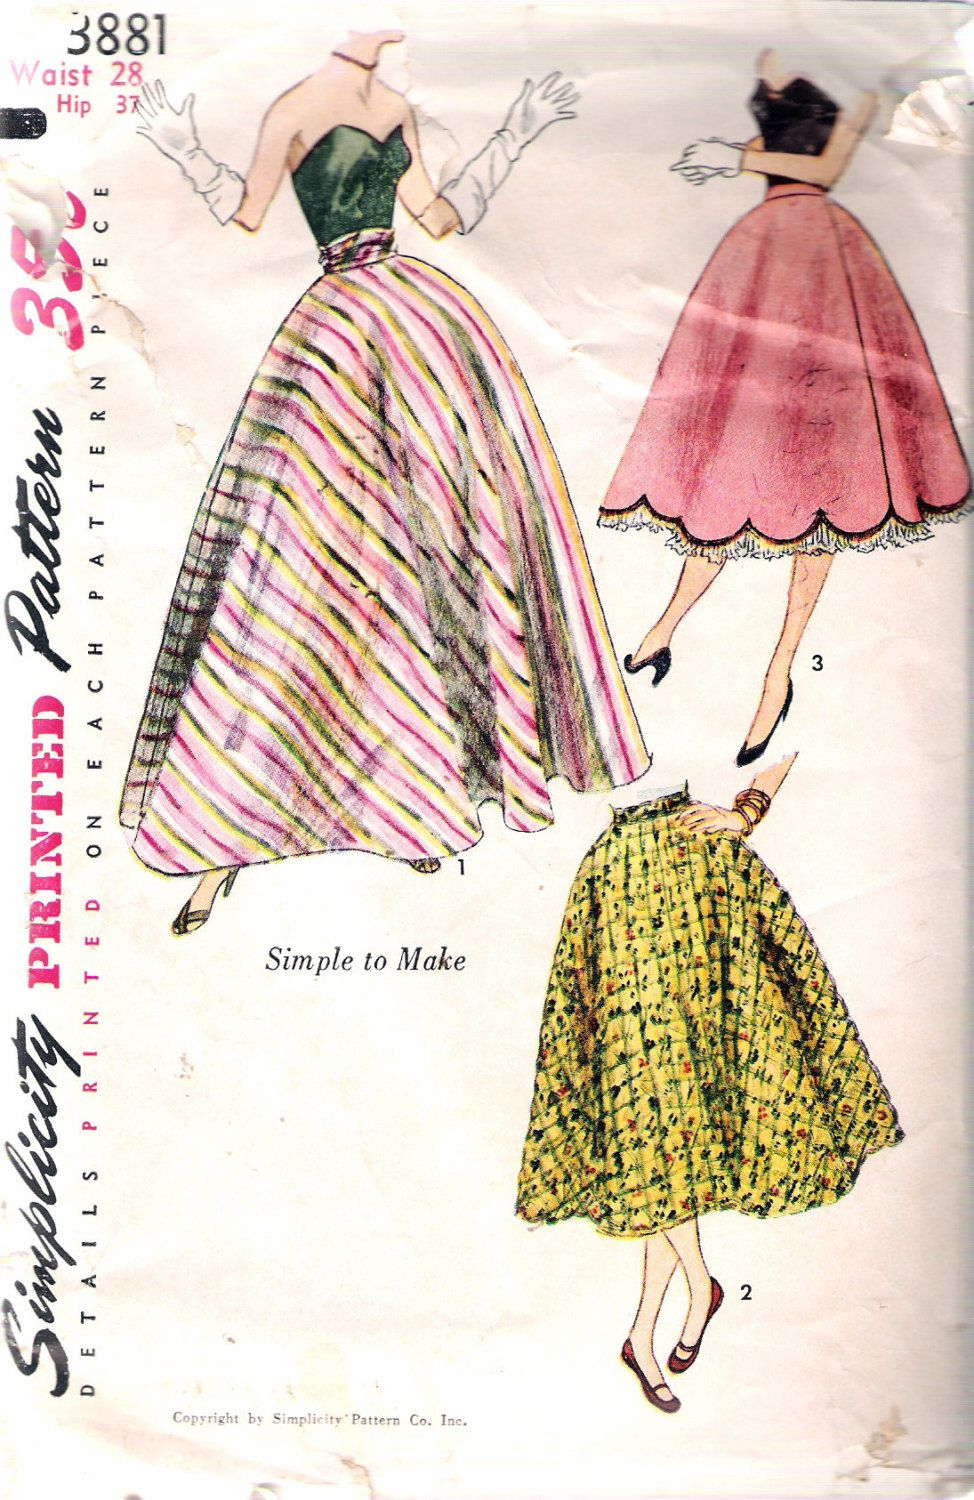 Vintage 1952 simplicity 3881 misses half circle skirt sewing vintage 1952 simplicity 3881 misses half circle skirt sewing pattern size waist 28 by recycledelic1 jeuxipadfo Gallery